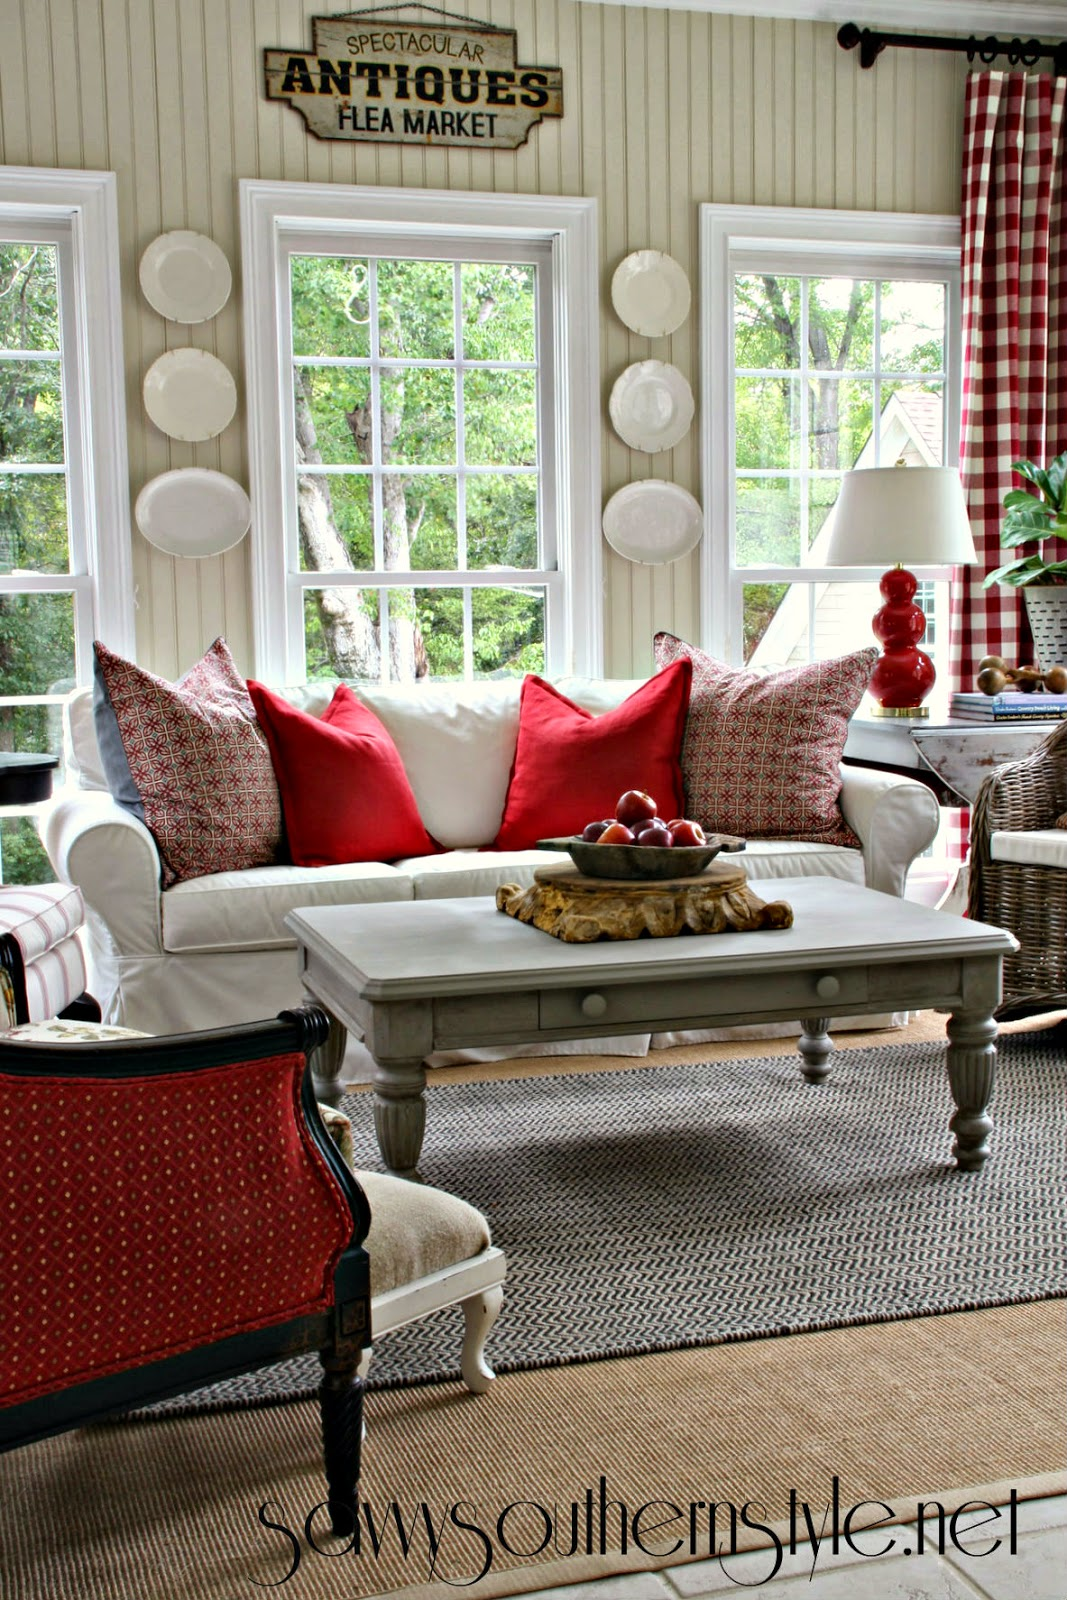 Savvy southern style a change of colors in the sun room - Decorating living room country style ...